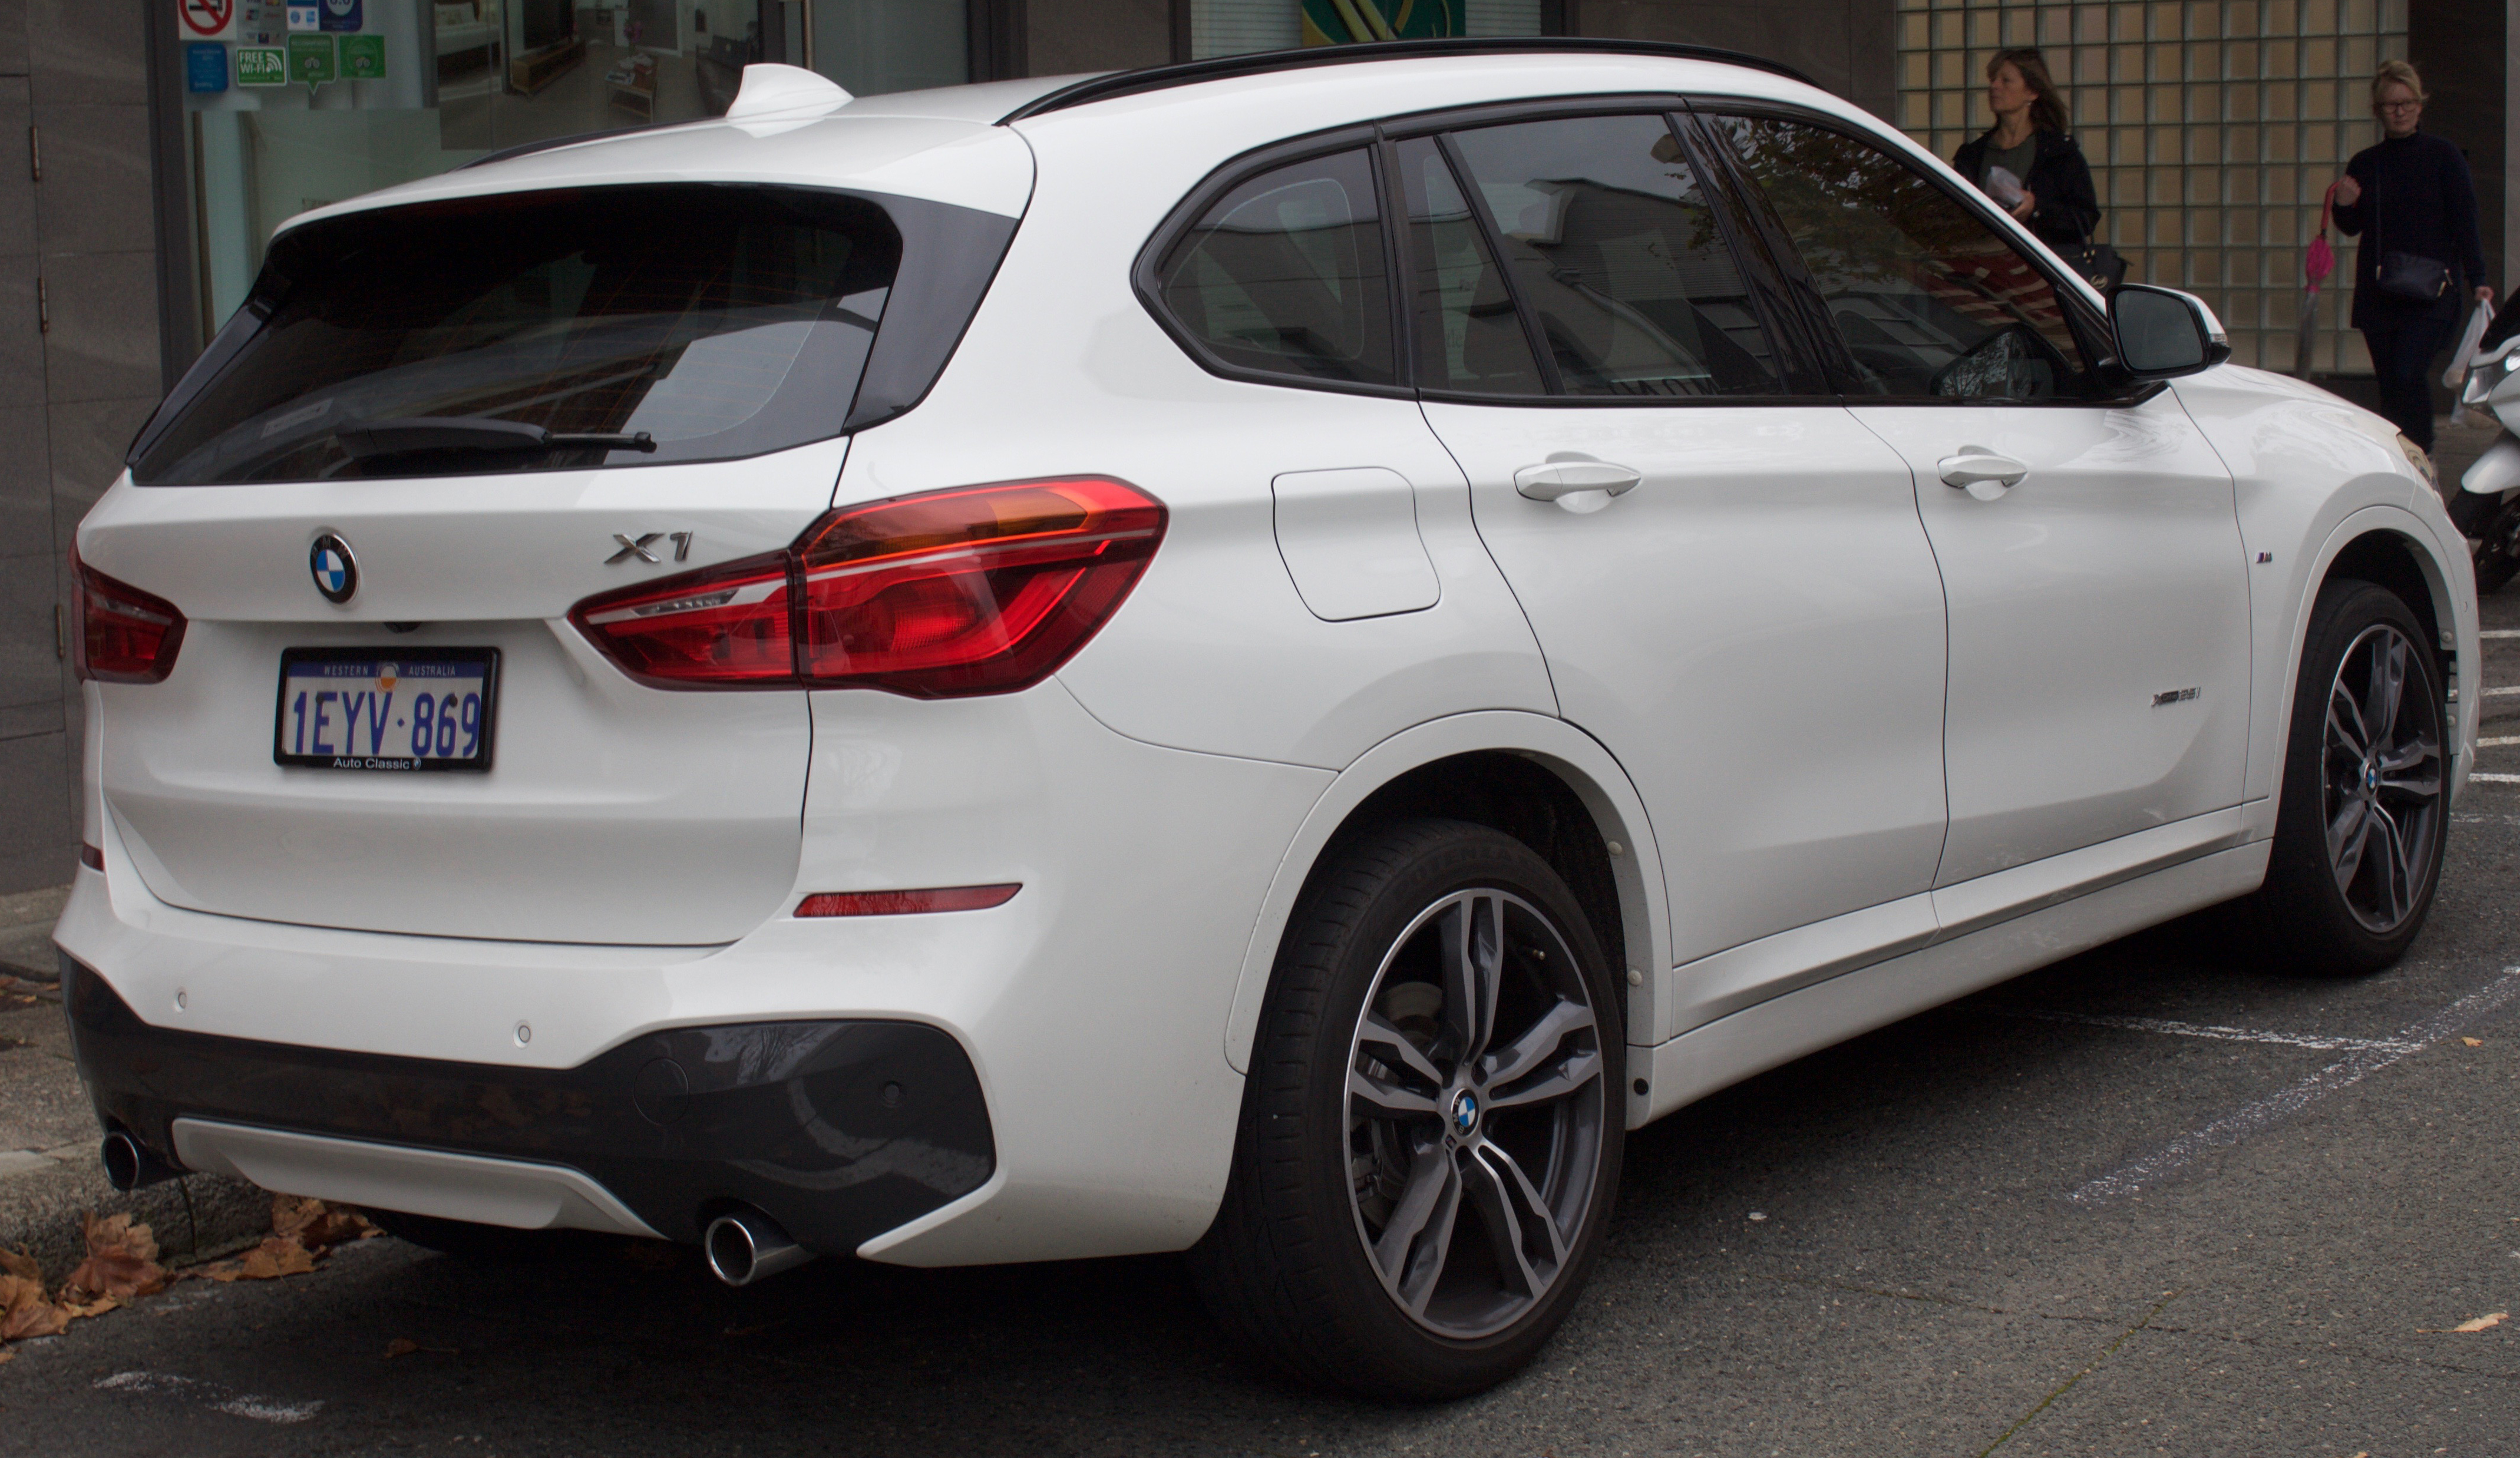 BMW X1 I (E84) 2009 - 2012 SUV 5 door #1